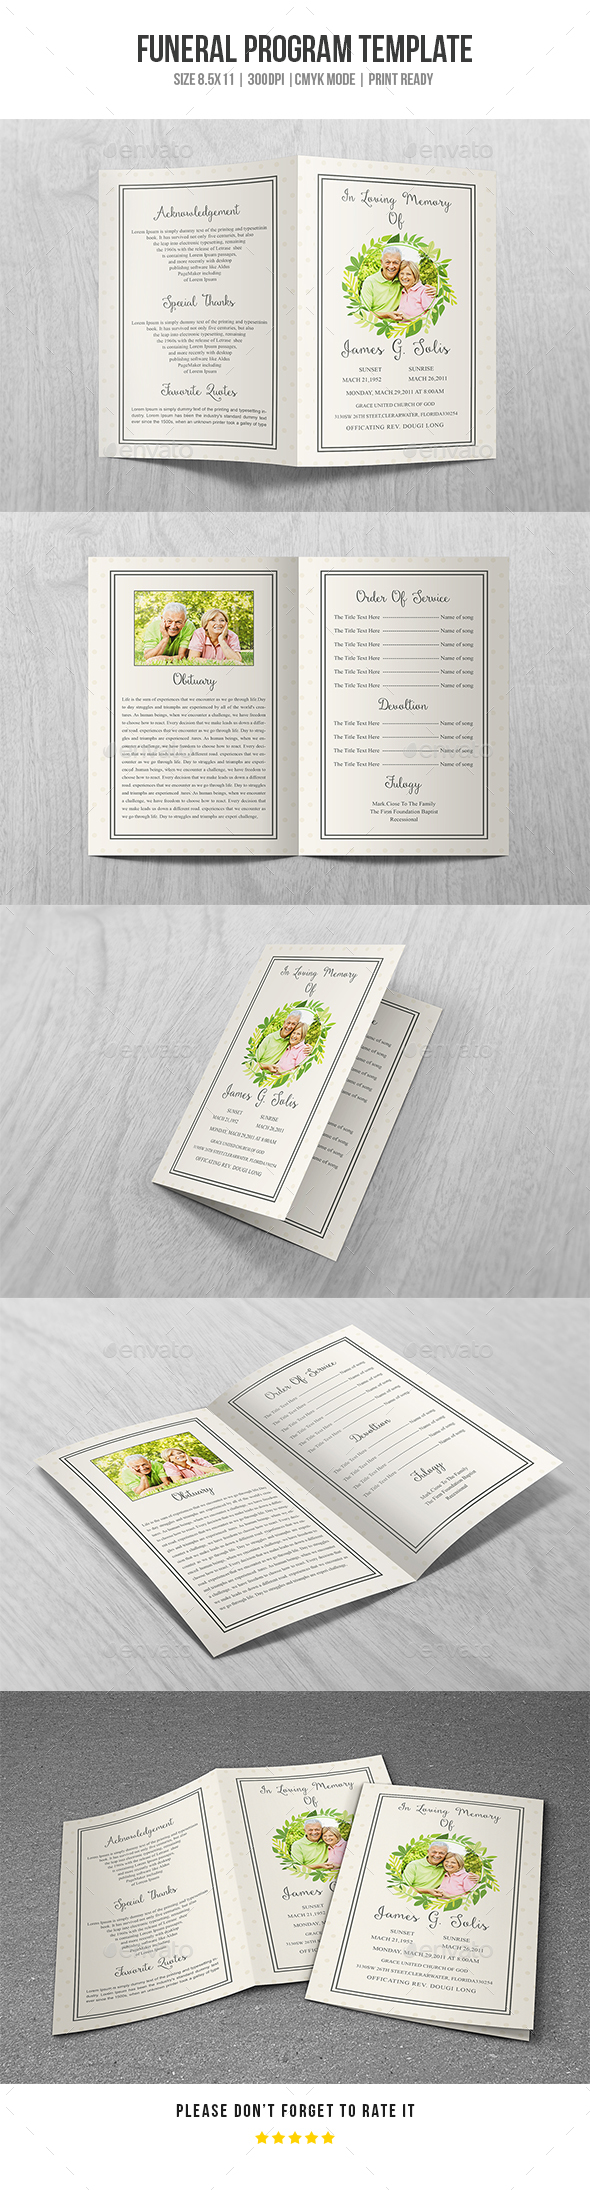 GraphicRiver Funeral Program Template Vol 37 20374687